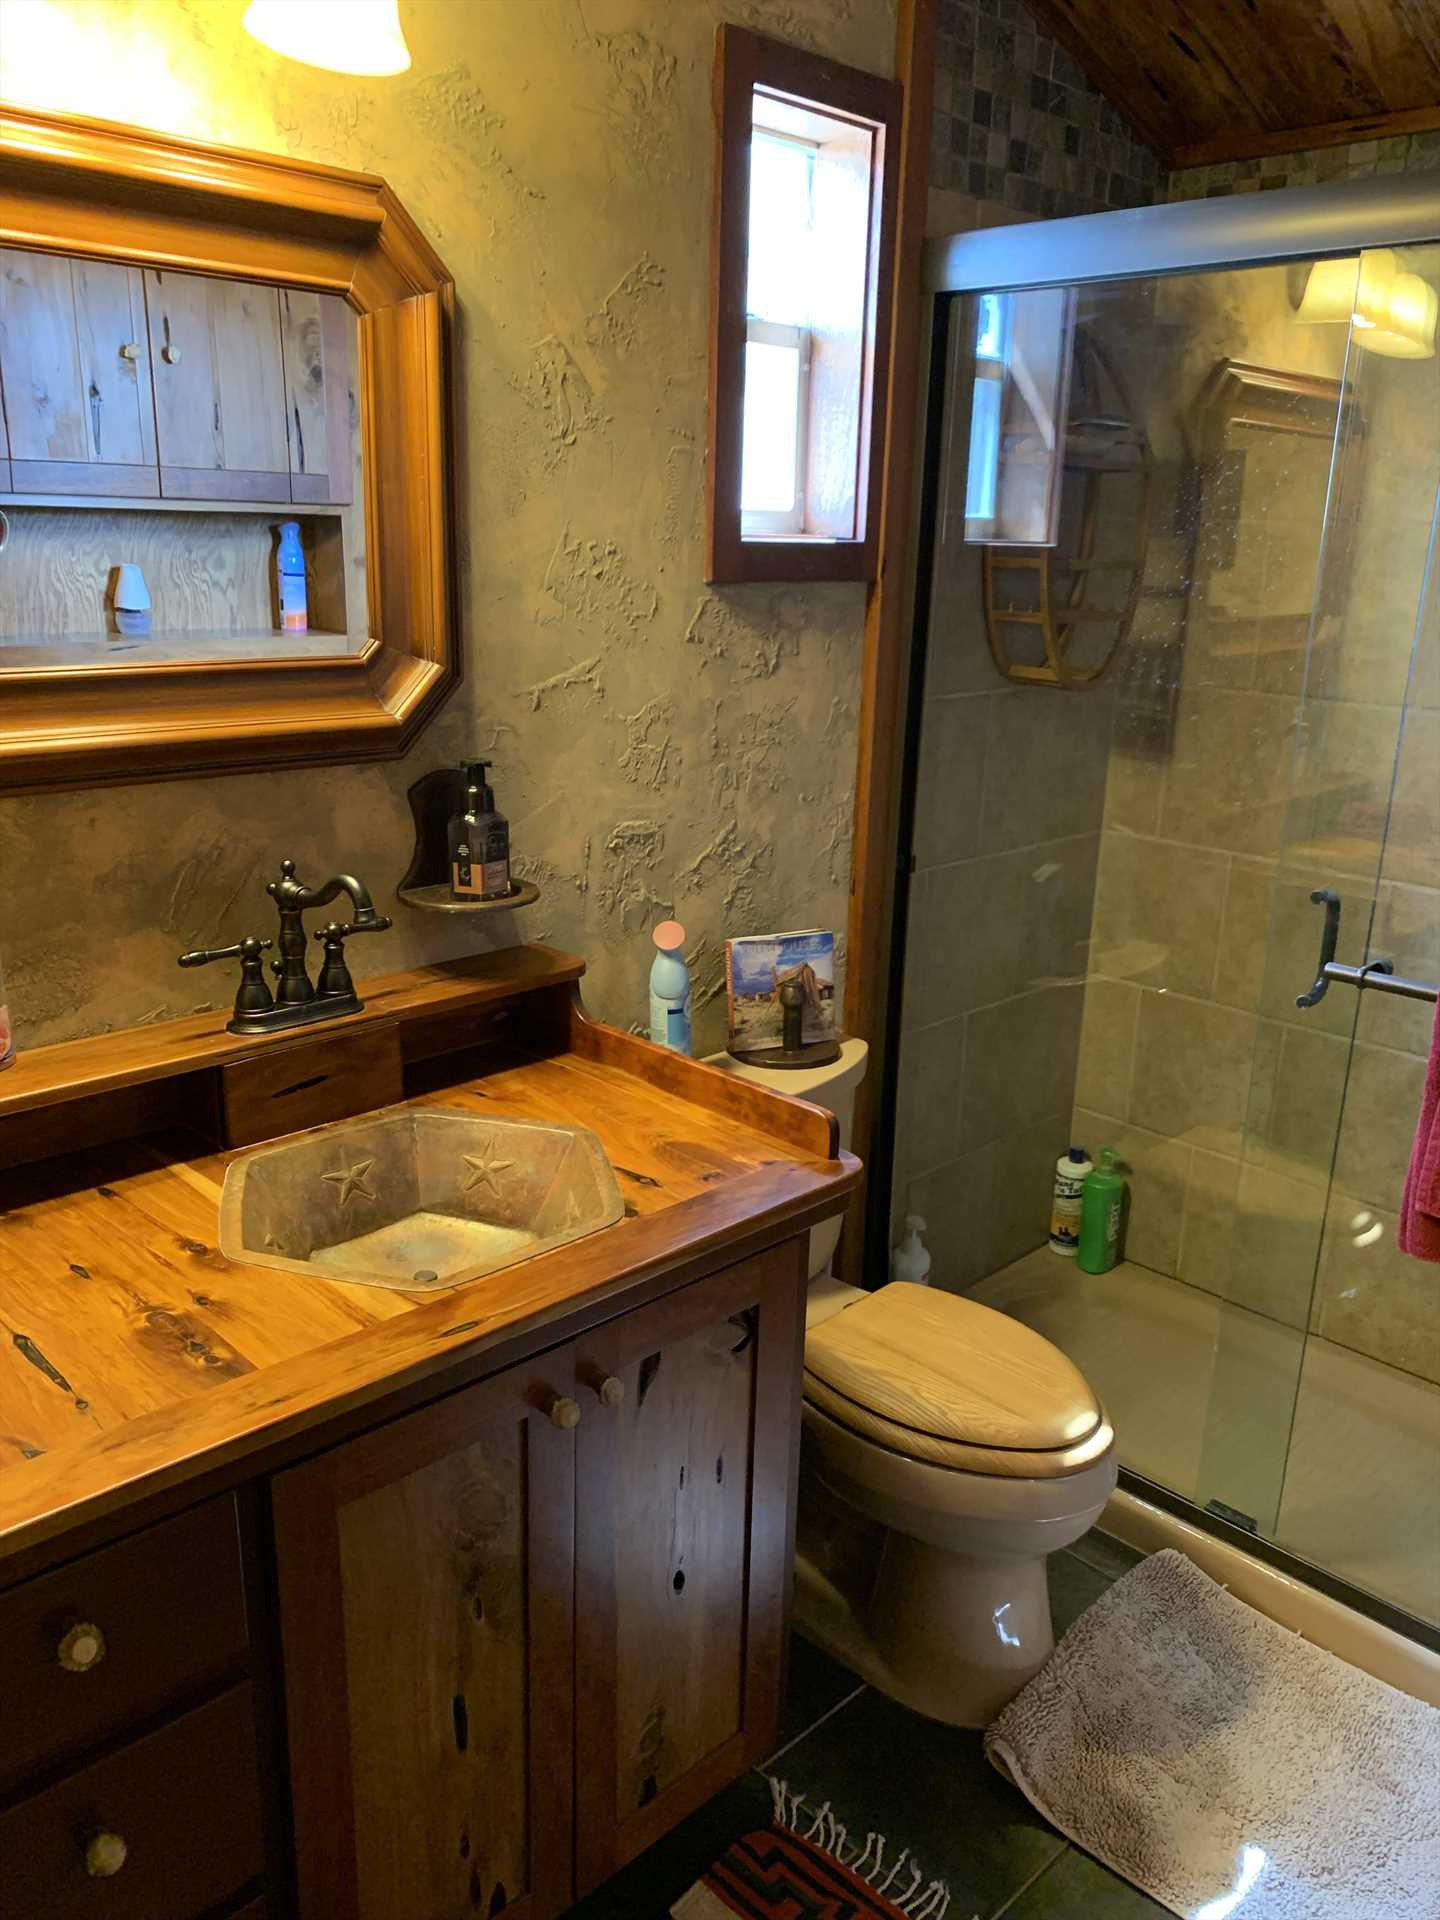 The full bath features a shower stall, unique wood-accented vanity, and plenty of fluffy and clean linens.